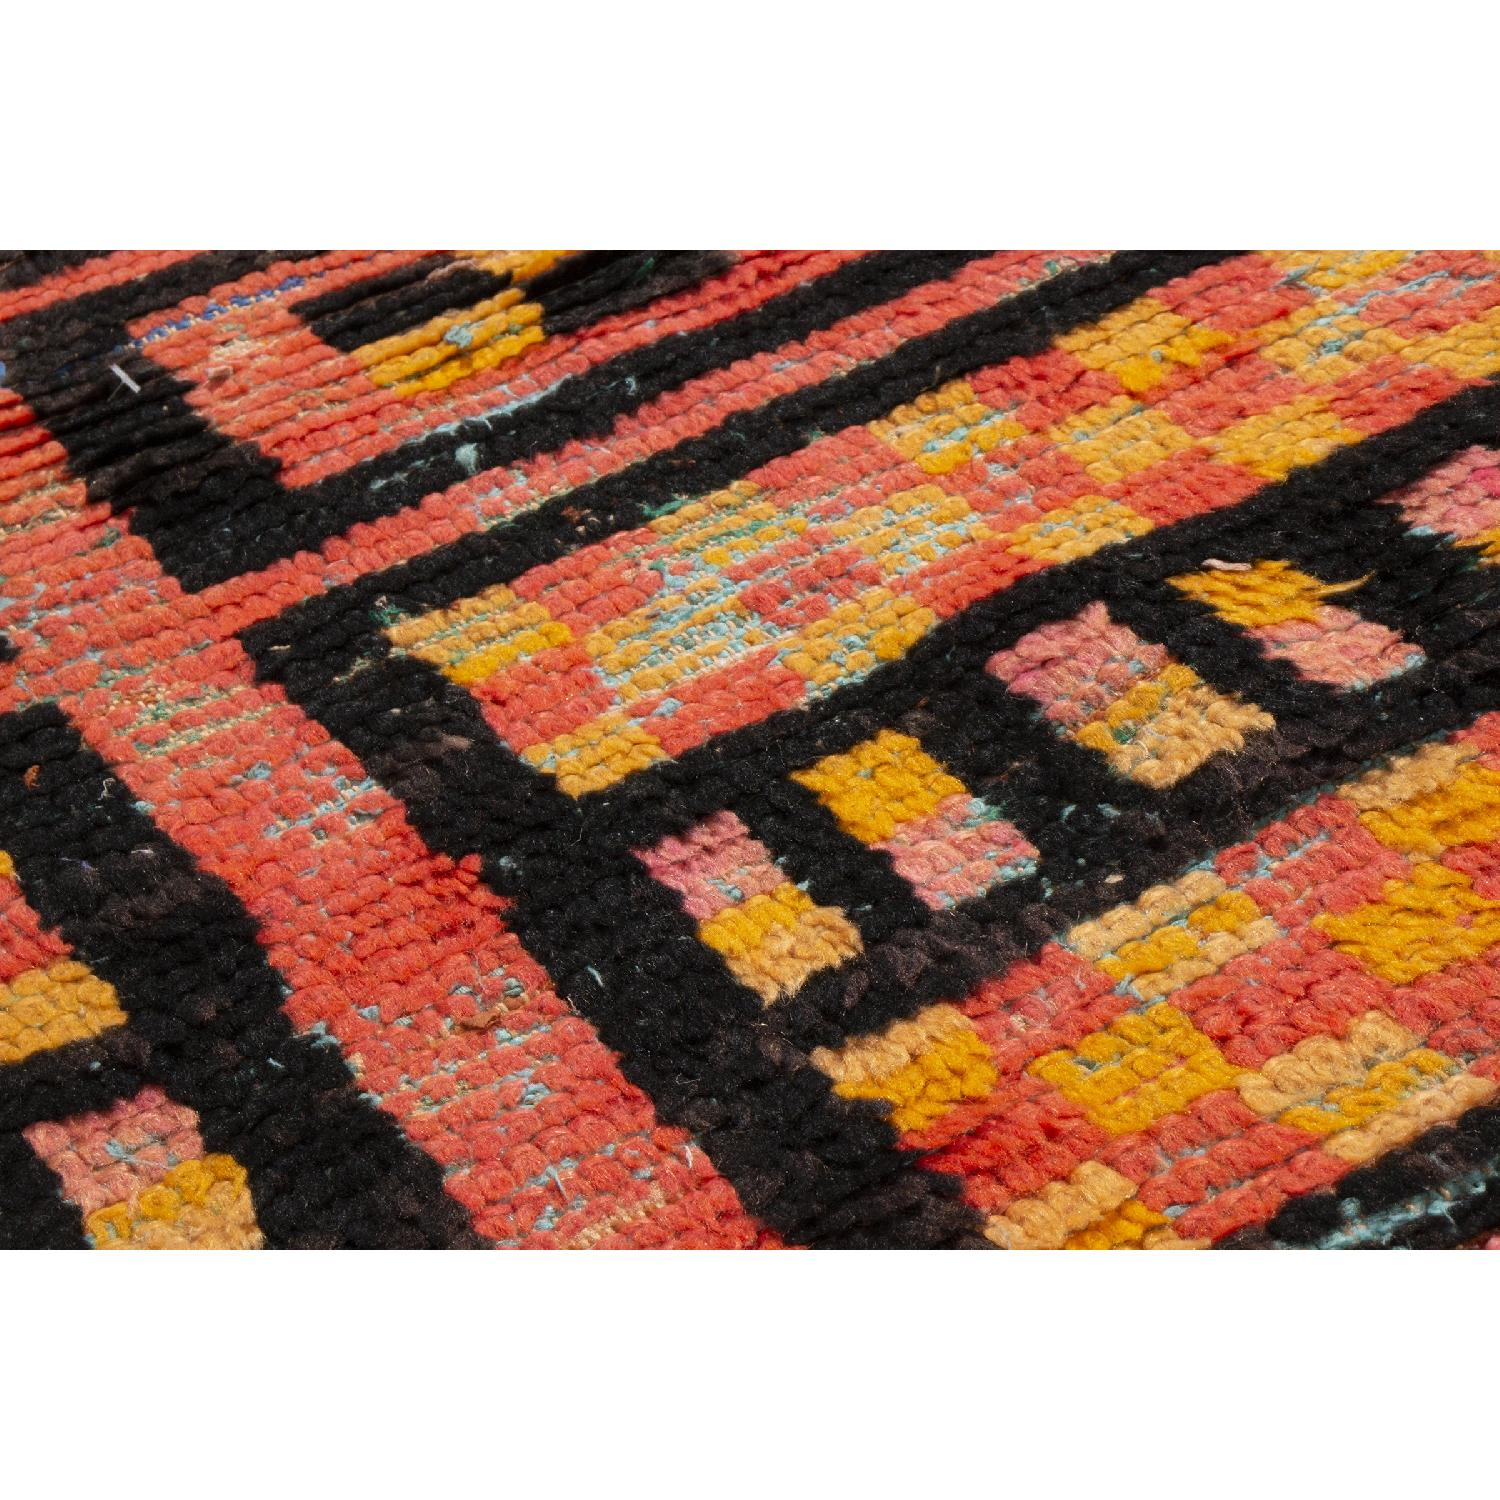 Radiant Transitional Moroccan Geometric Rug-2